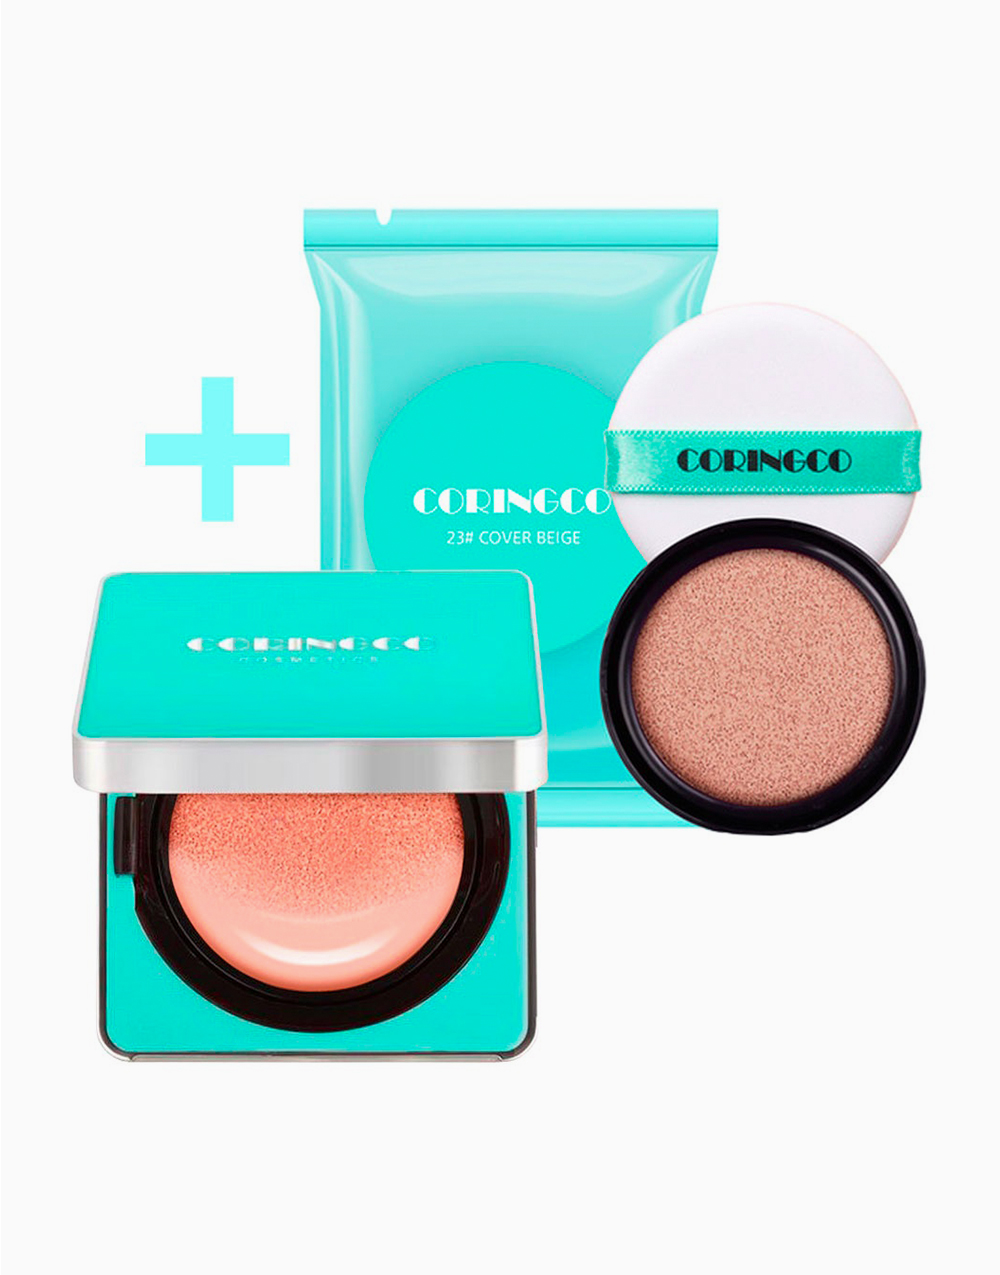 Mint Blossom Cover BB Cushion SPF50+ PA+++ With Refill by Coringco | #23 Cover Beige